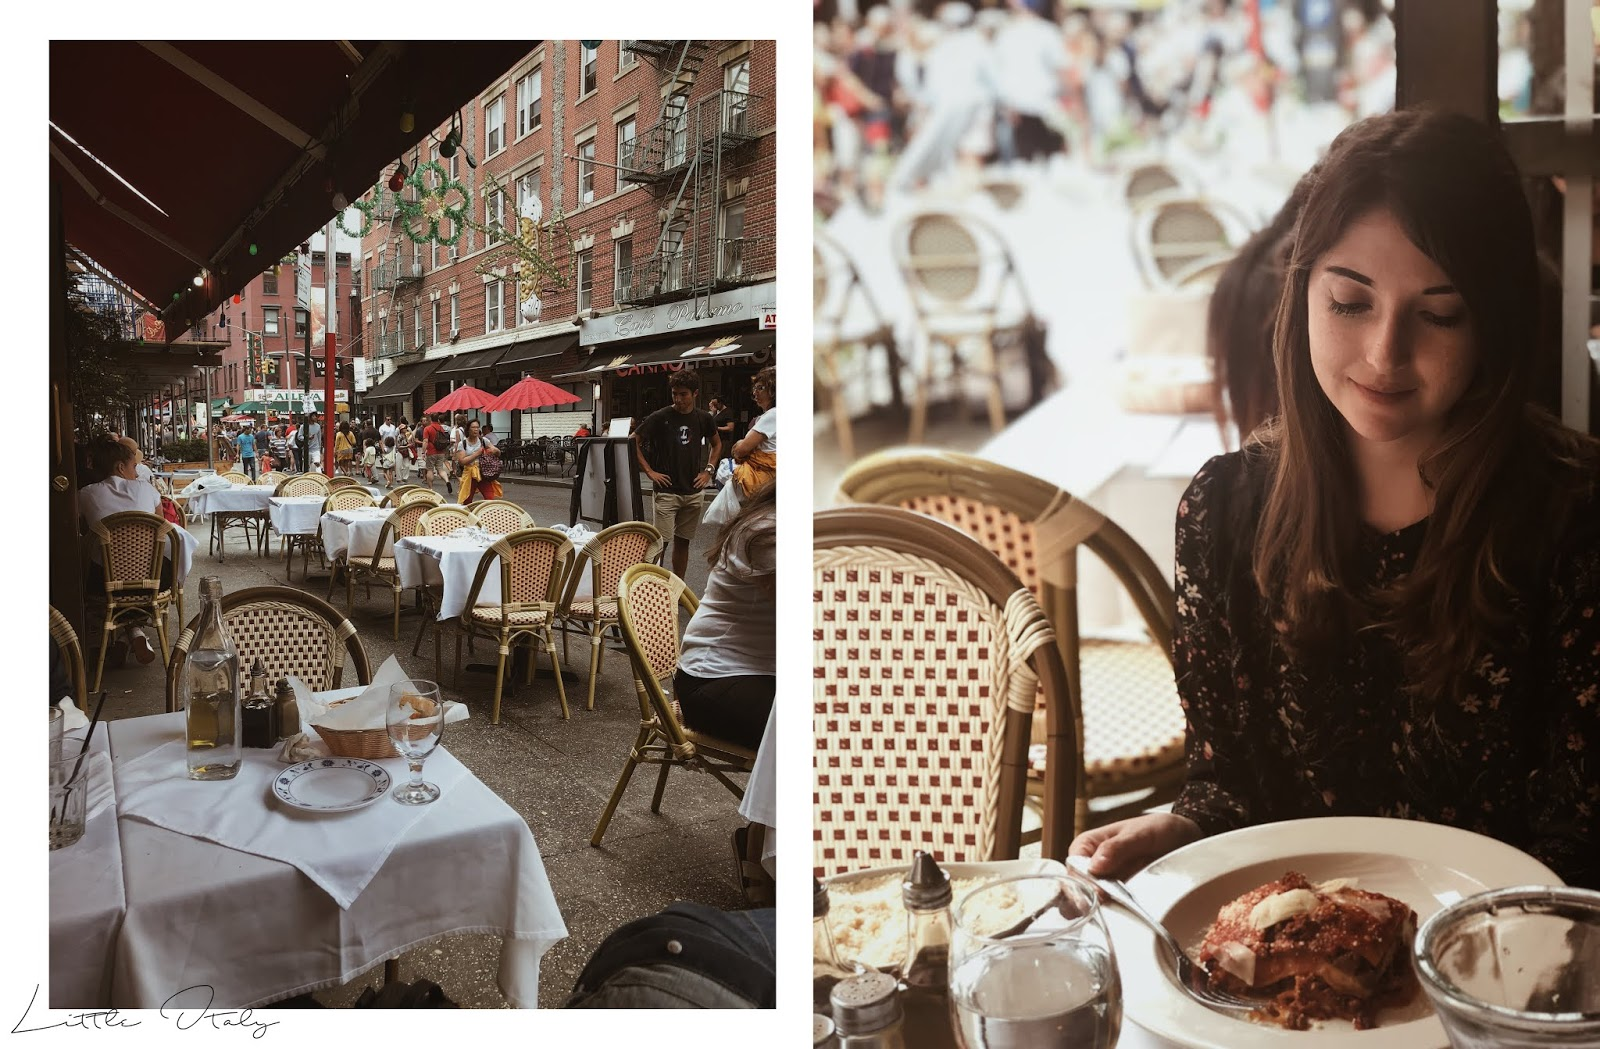 new york instagram places guide food spots instagrammable worthy little italy soho 2